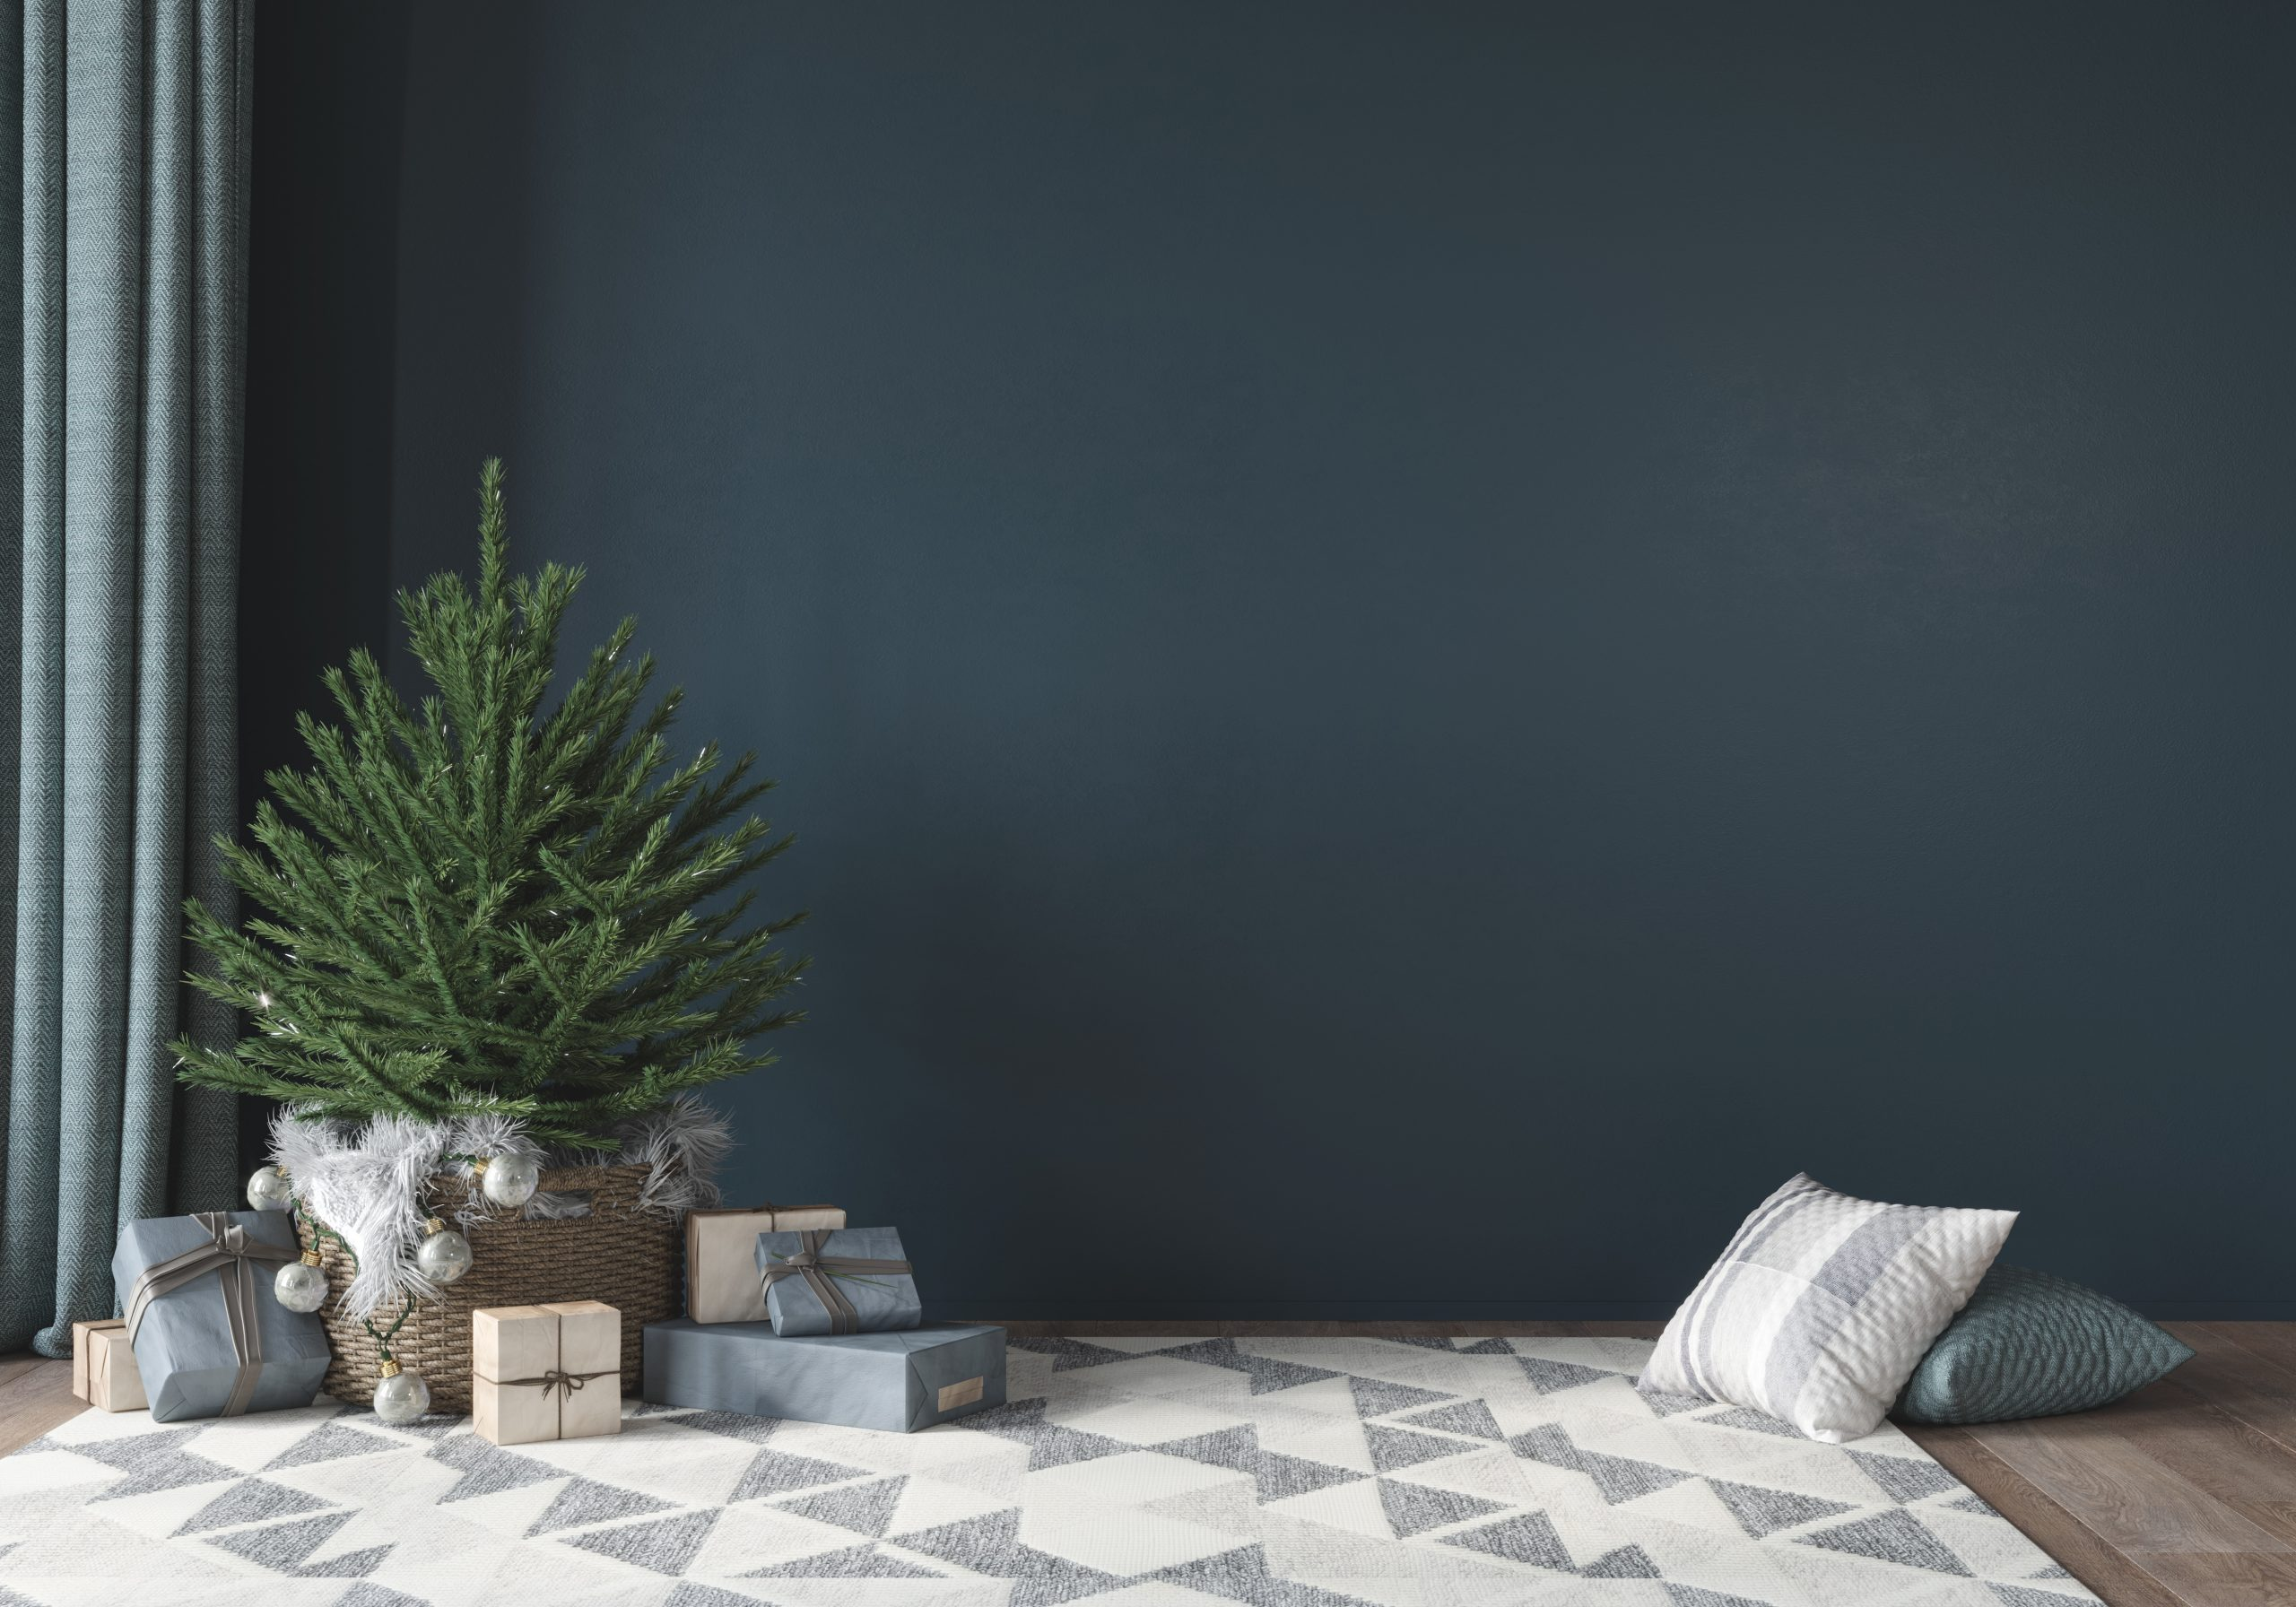 Festive interior with cute little christmas tree in basket, gifts and rug with geometric pattern on blue wall background